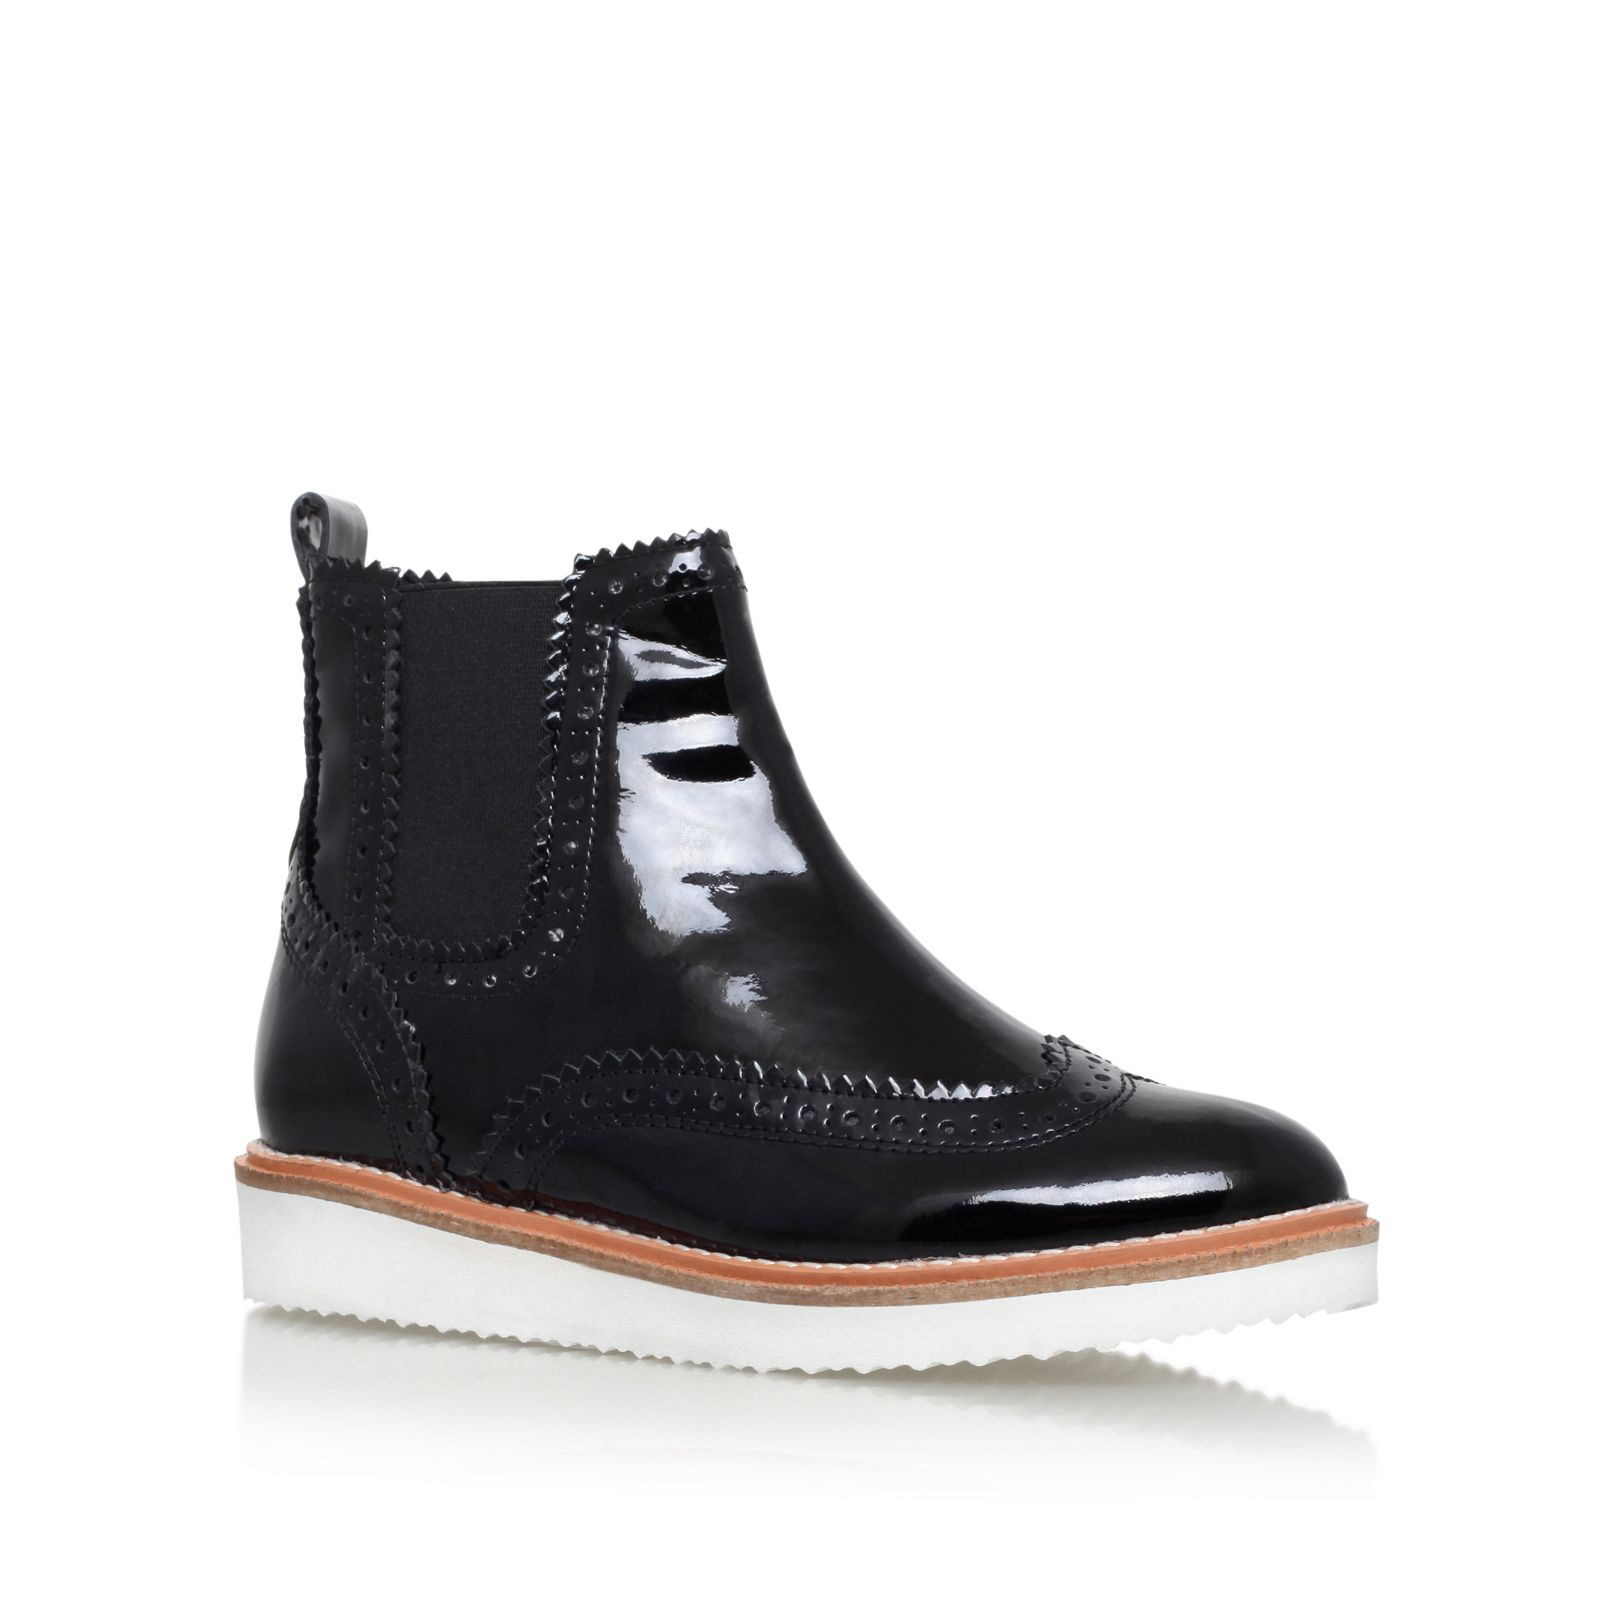 buy cheap low heel boots compare s footwear prices